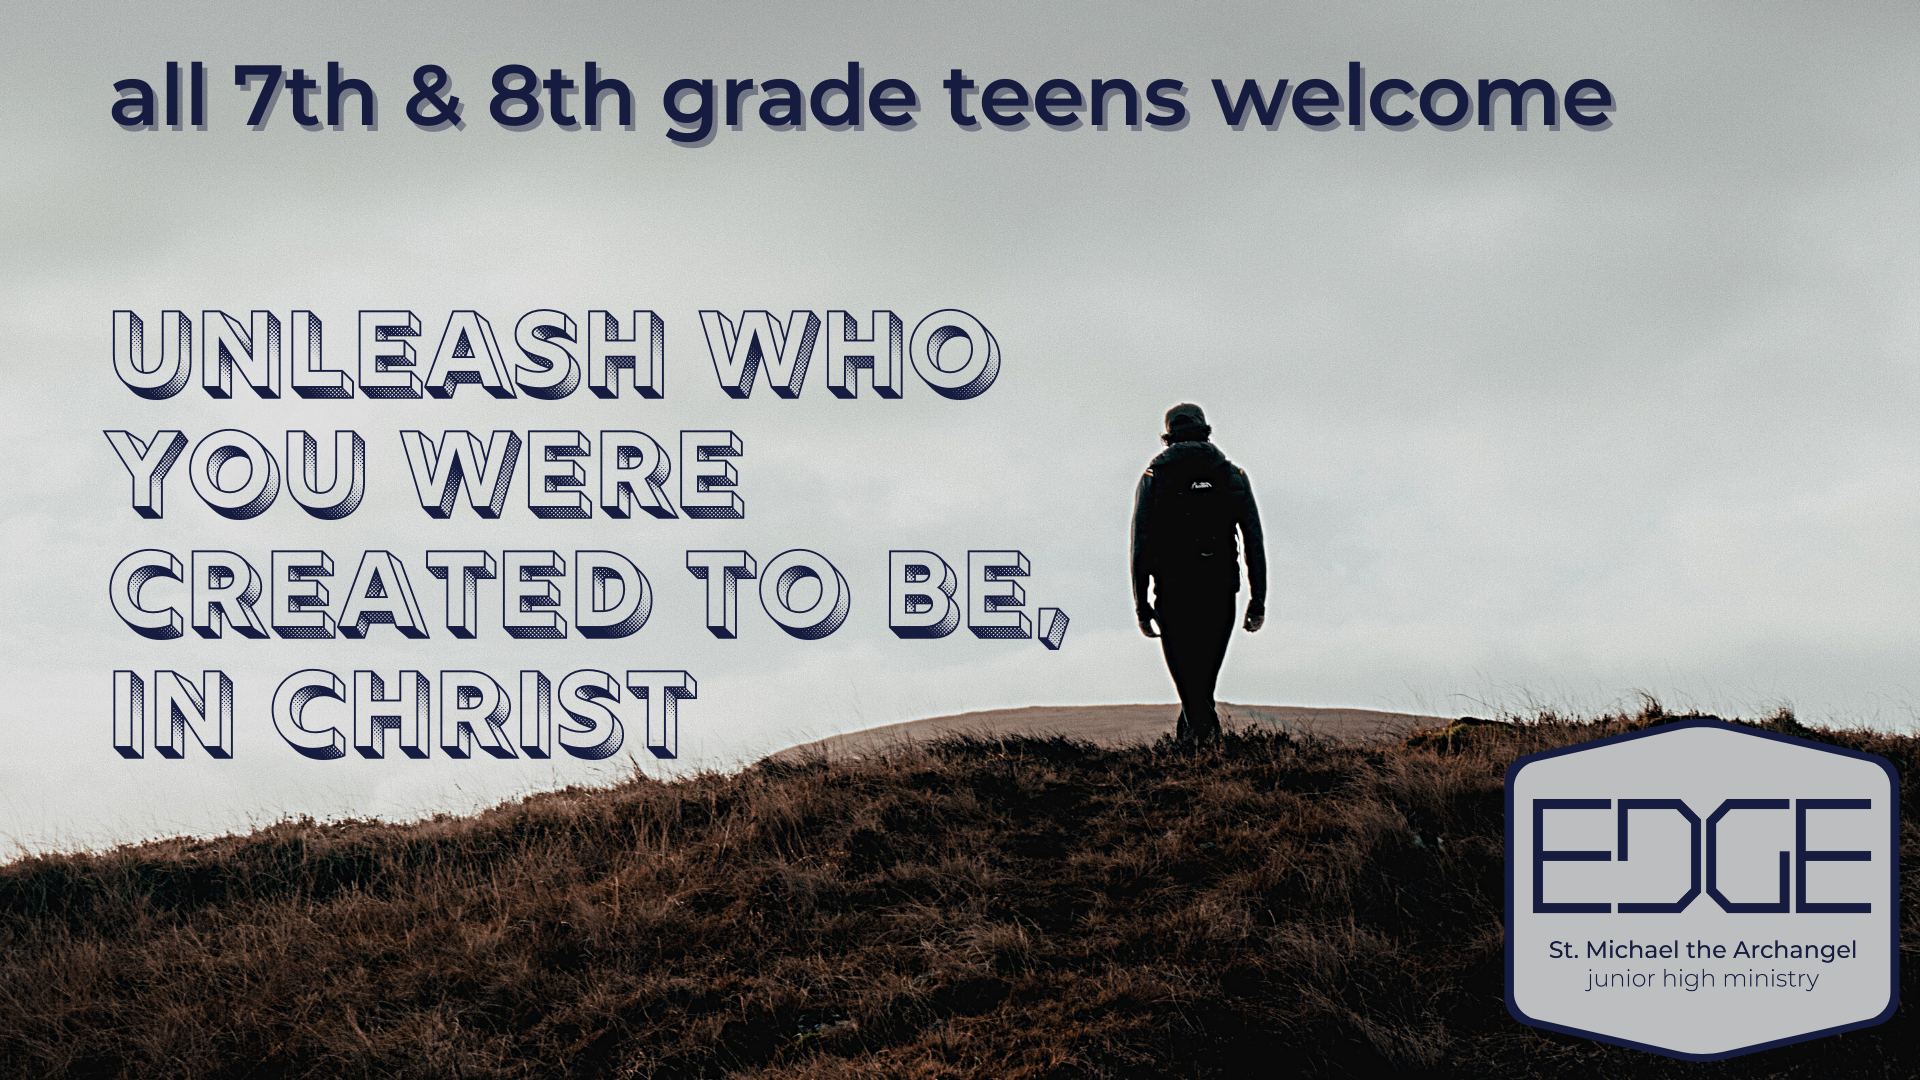 all 7th & 8th grade teens welcome at EDGE